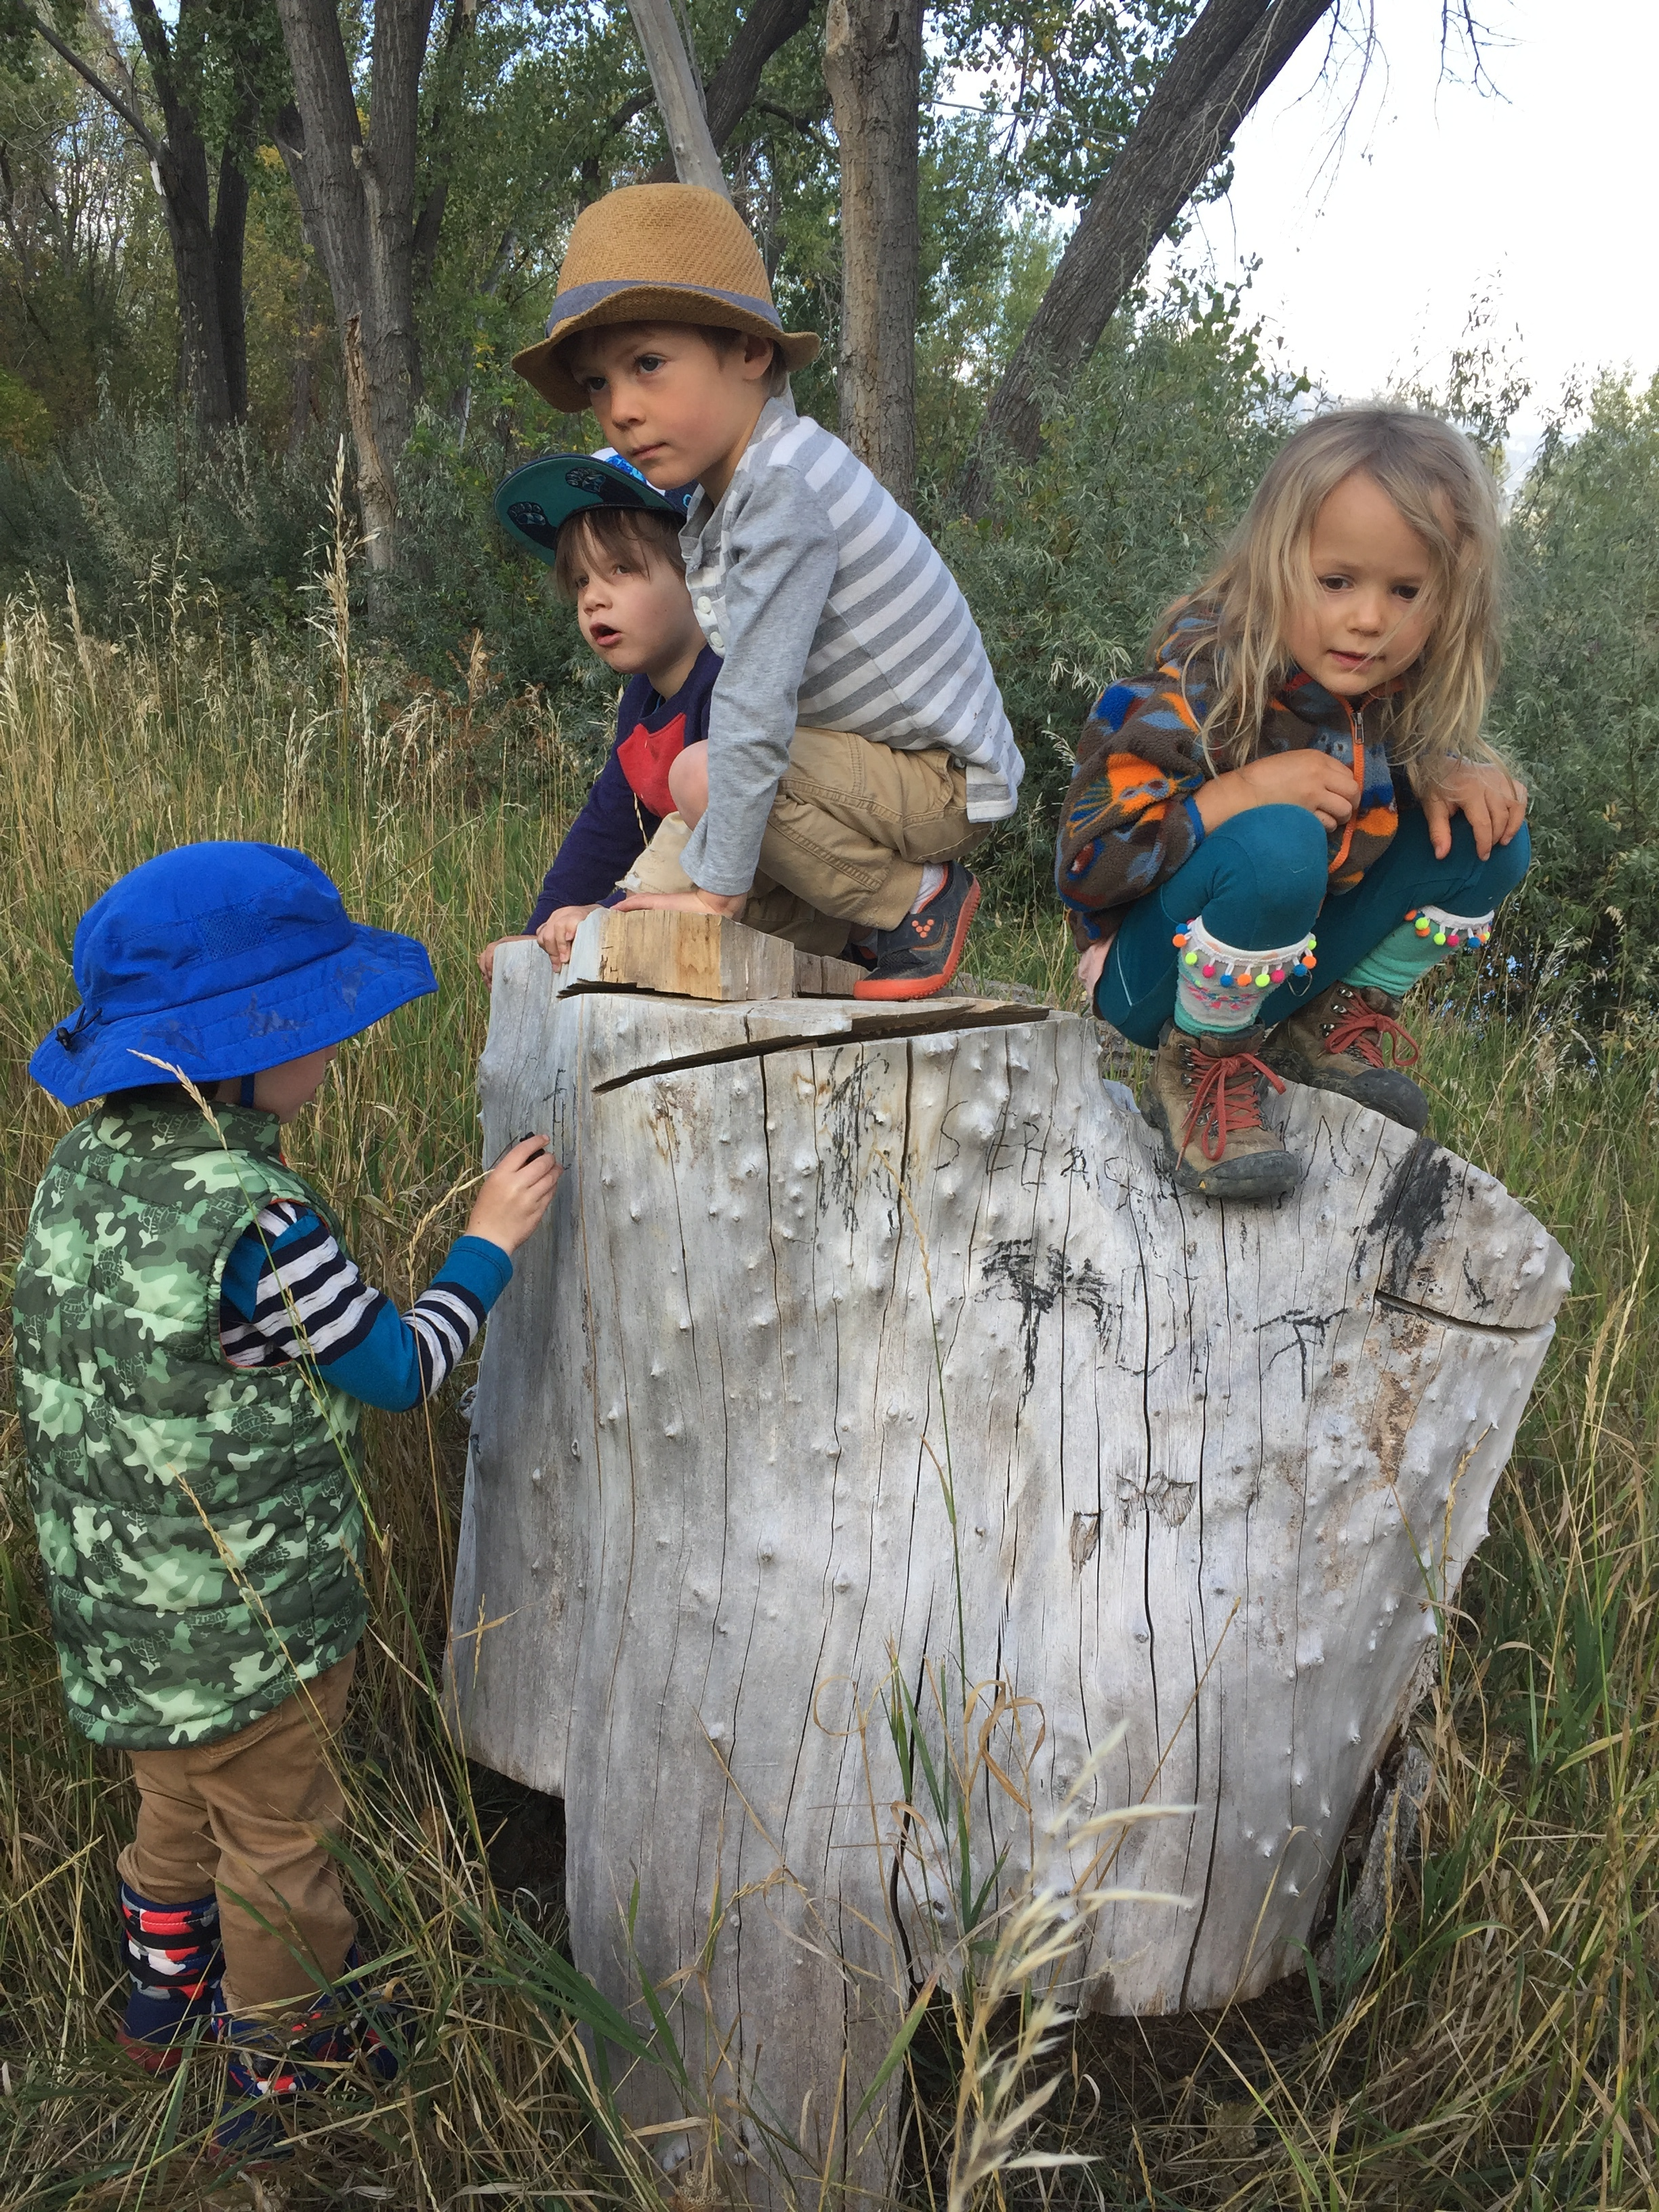 The kids were so impressed when one friend wrote his name on this stump that they all added theirs.